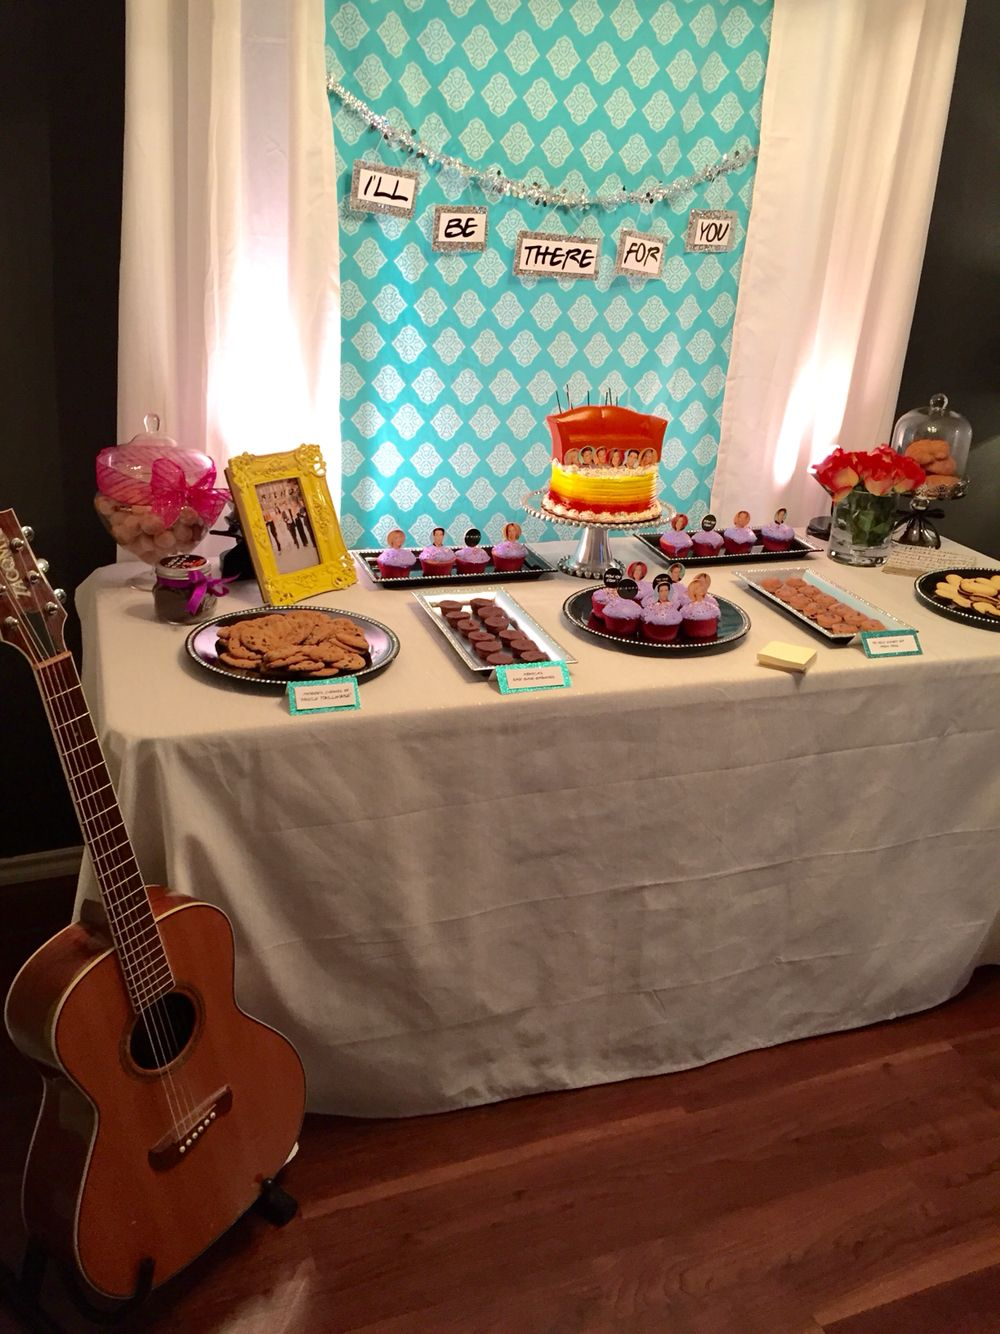 f r i e n d s theme birthday party dessert table with phoebe 39 s guitar cailin birthday. Black Bedroom Furniture Sets. Home Design Ideas